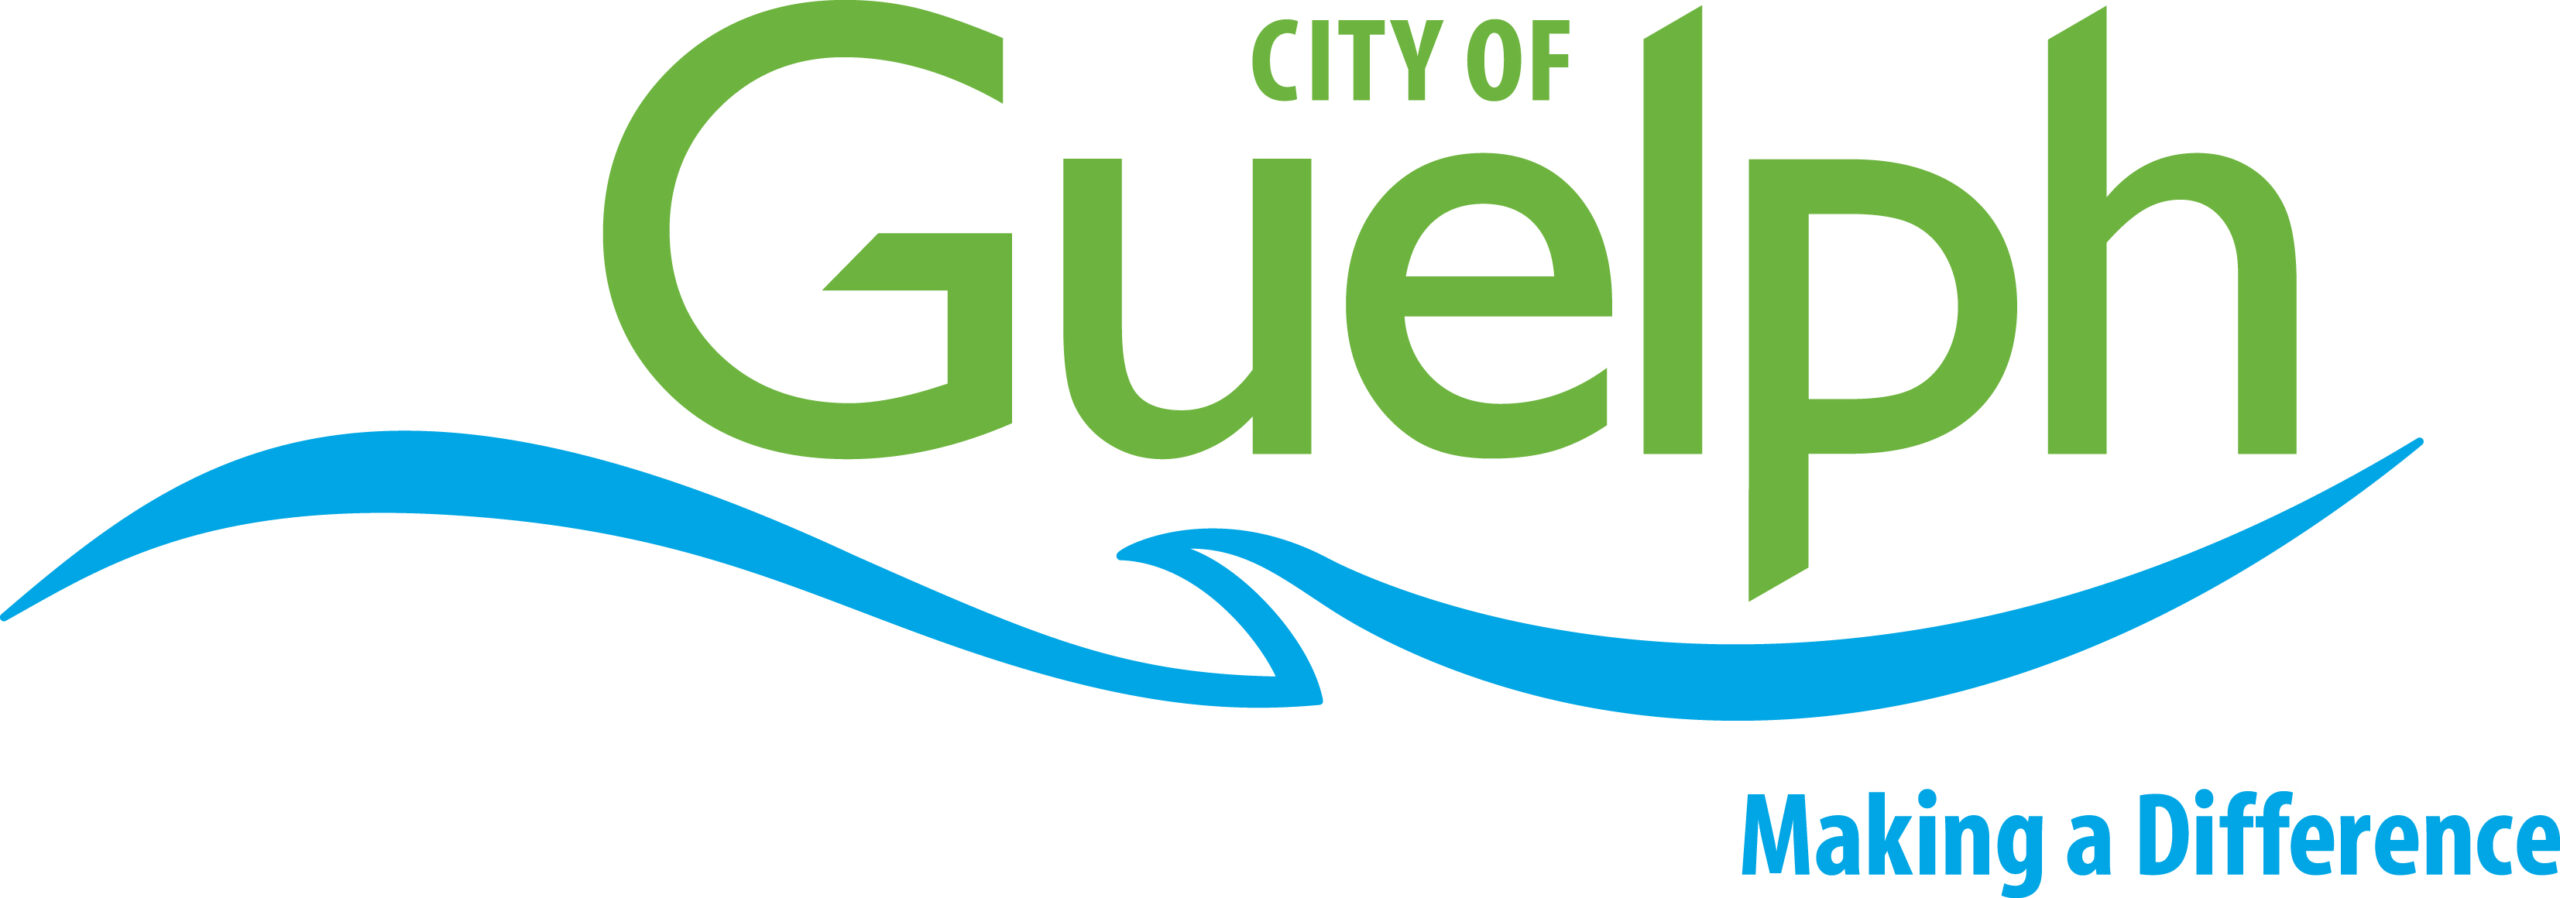 Logo contains text City of Guelph and Making a Difference